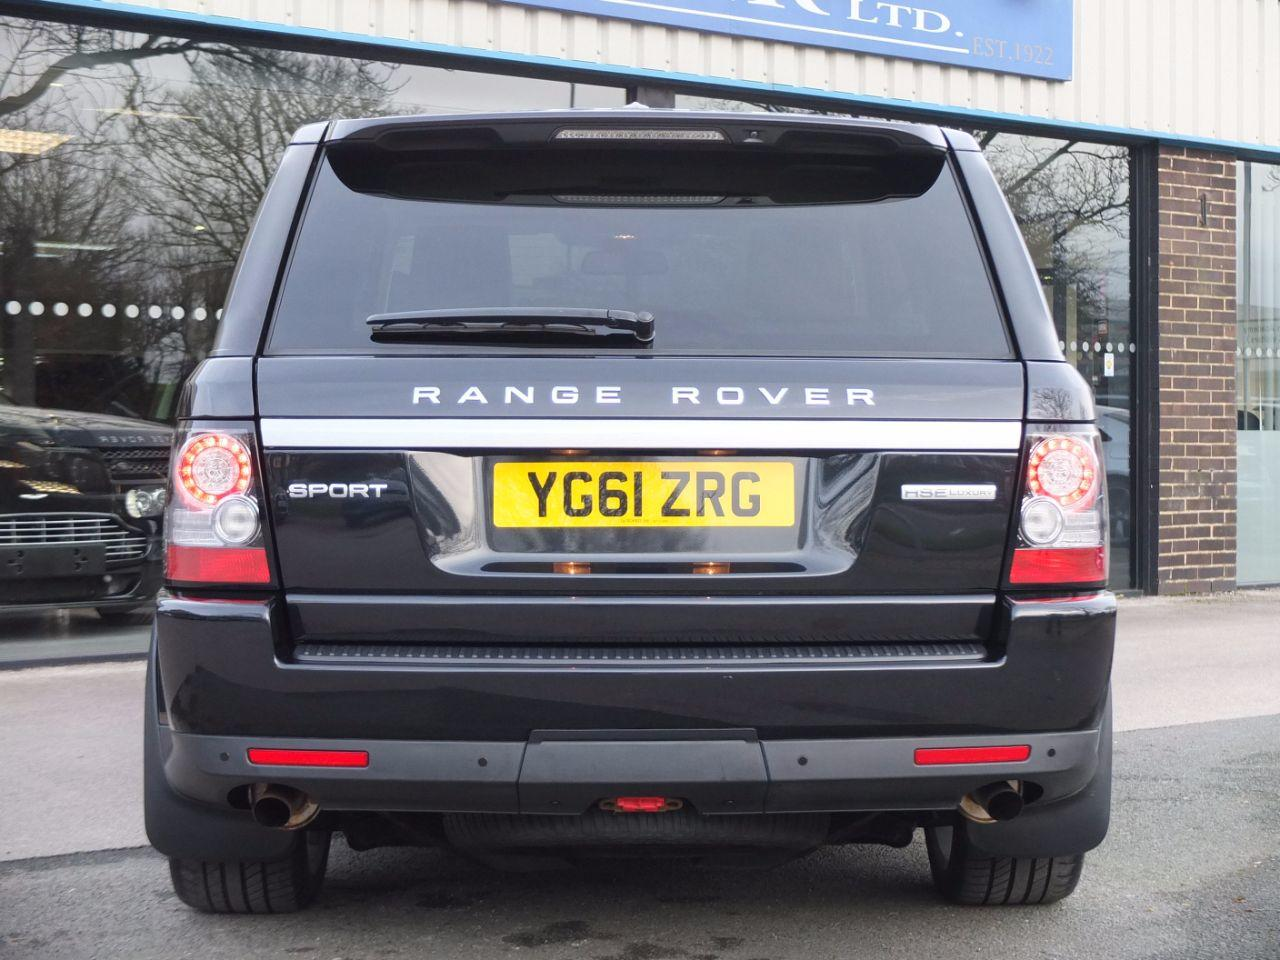 Land Rover Range Rover Sport 3.0 SDV6 HSE Luxury Estate Diesel Sumatra Black Metallic